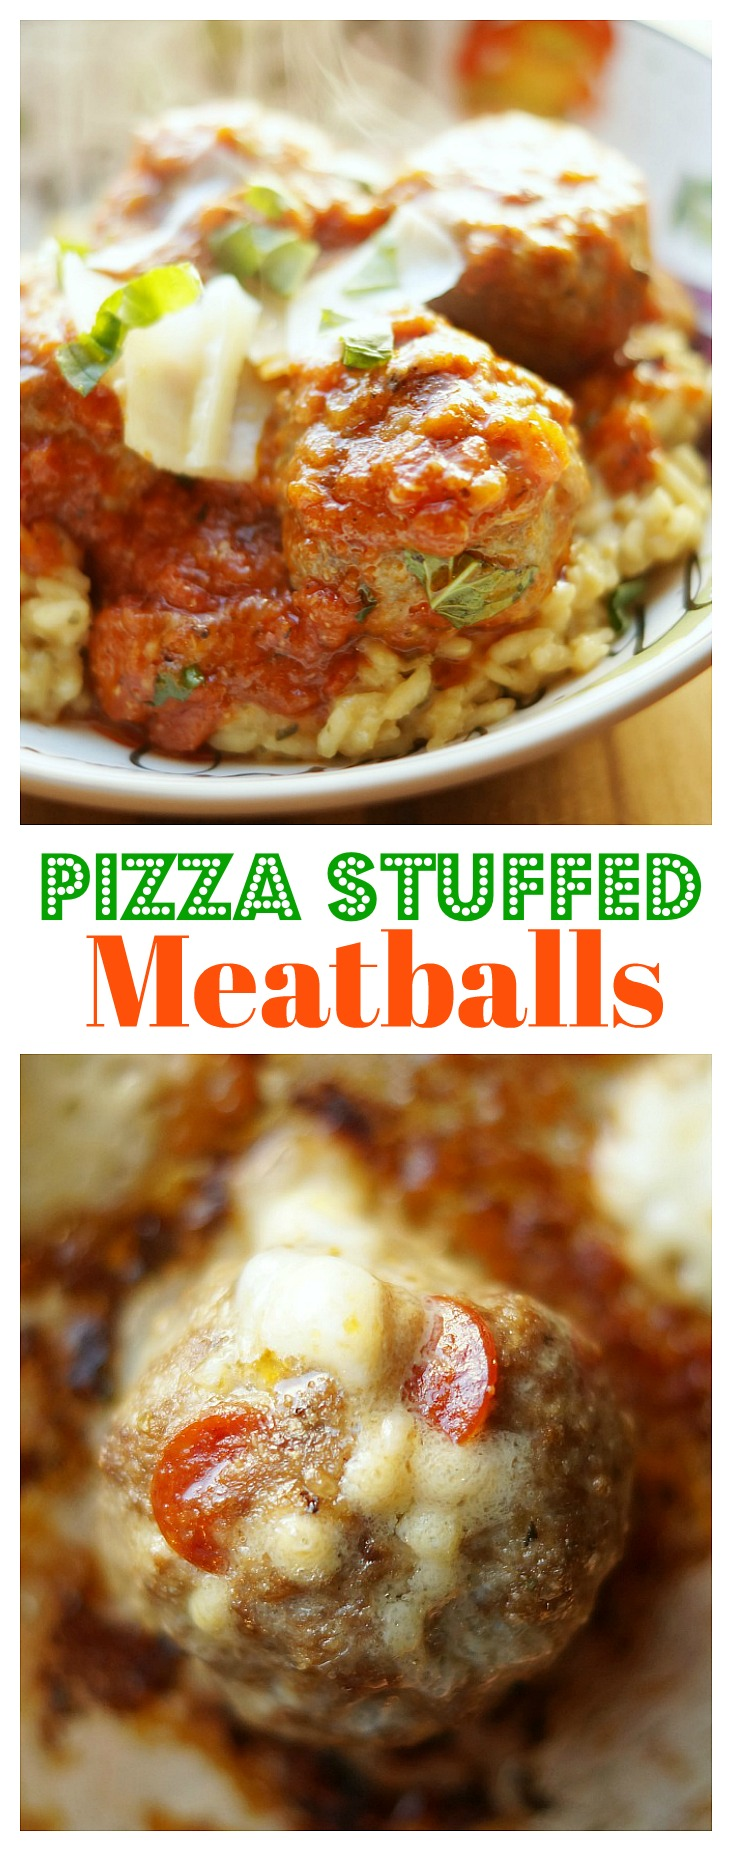 Easy and Delicious Pizza Stuffed Meatballs. Pepperoni and Mozzarella are stuffed into a delicious meatball, then simmered in pizza marinara sauce!